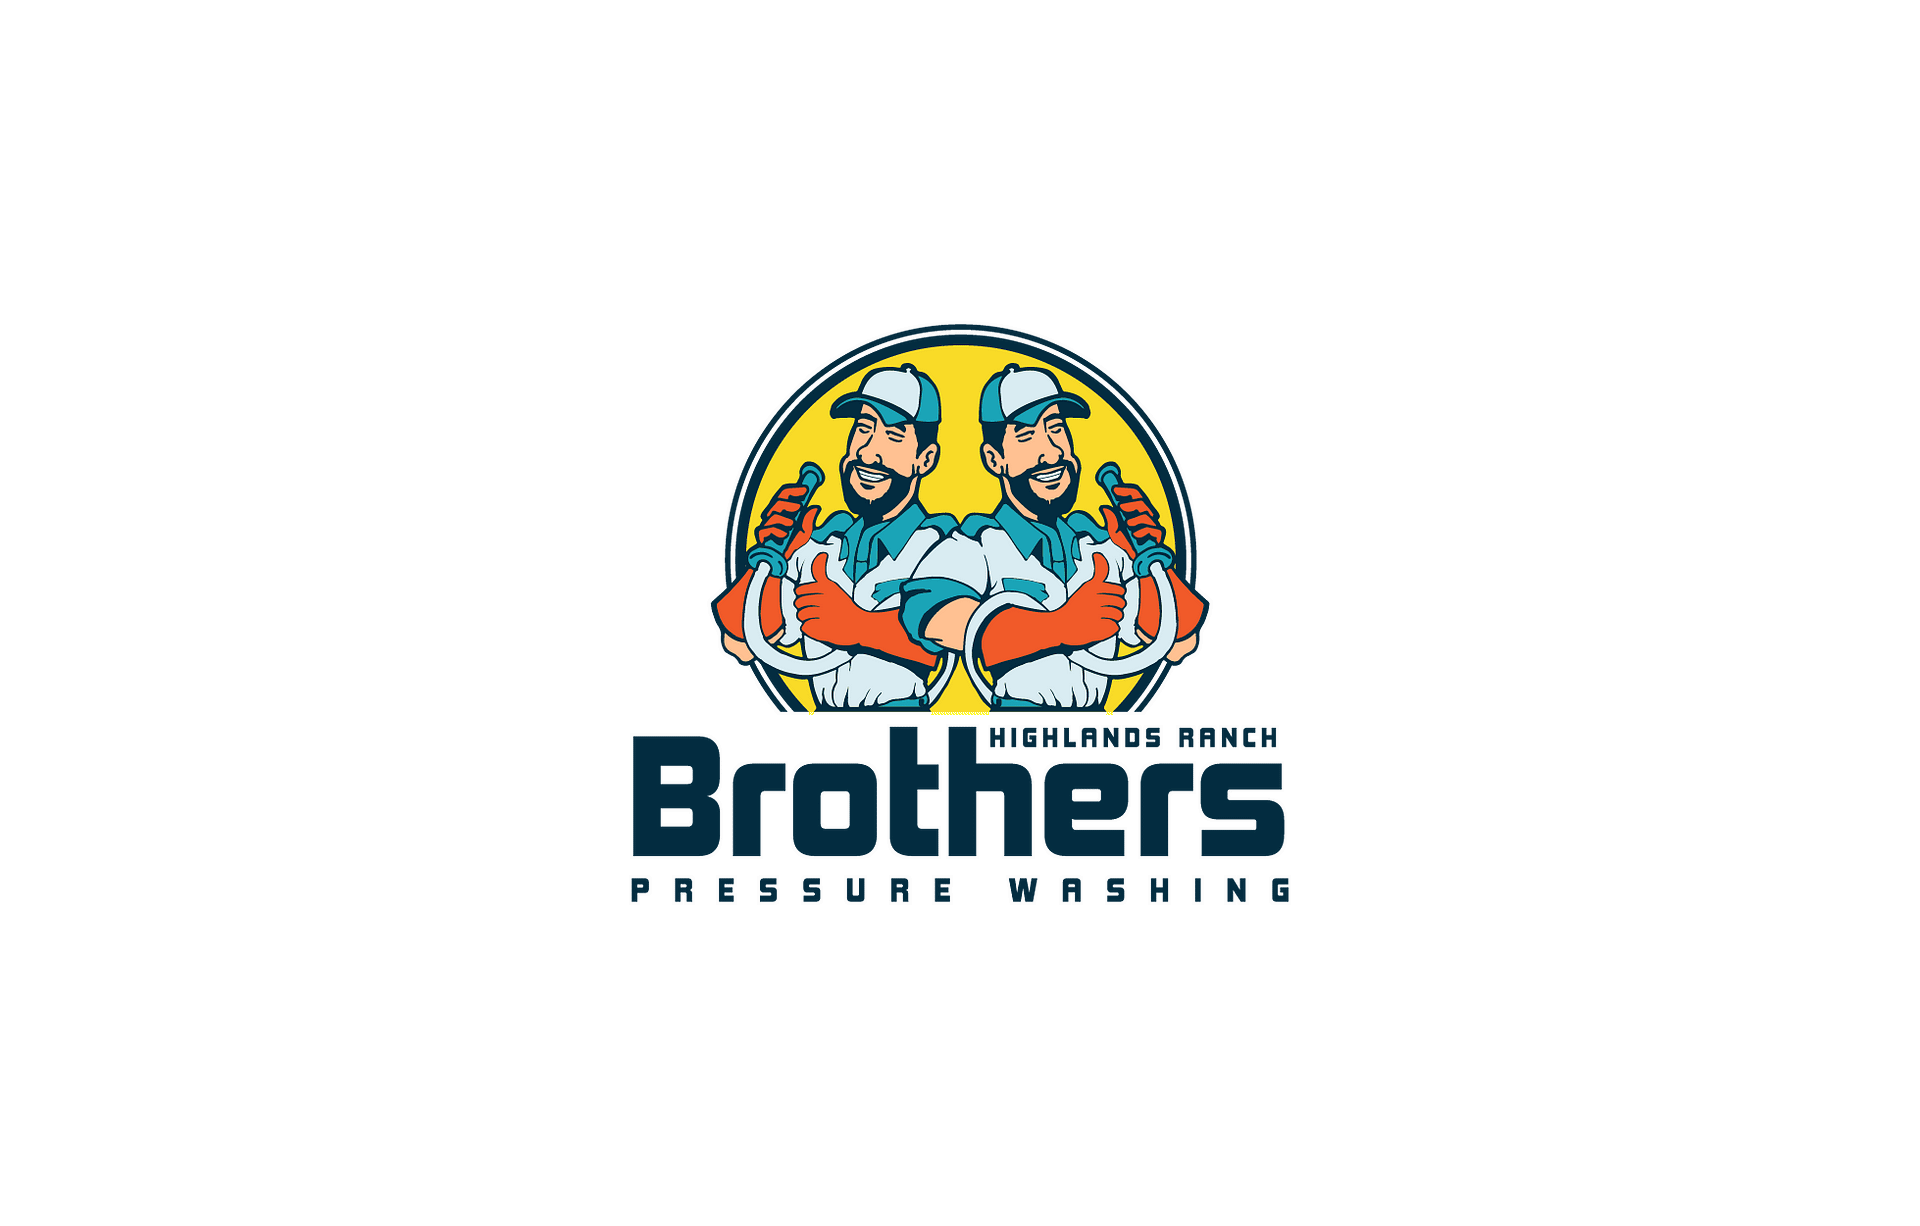 Highlands Ranch Brothers Power Washing